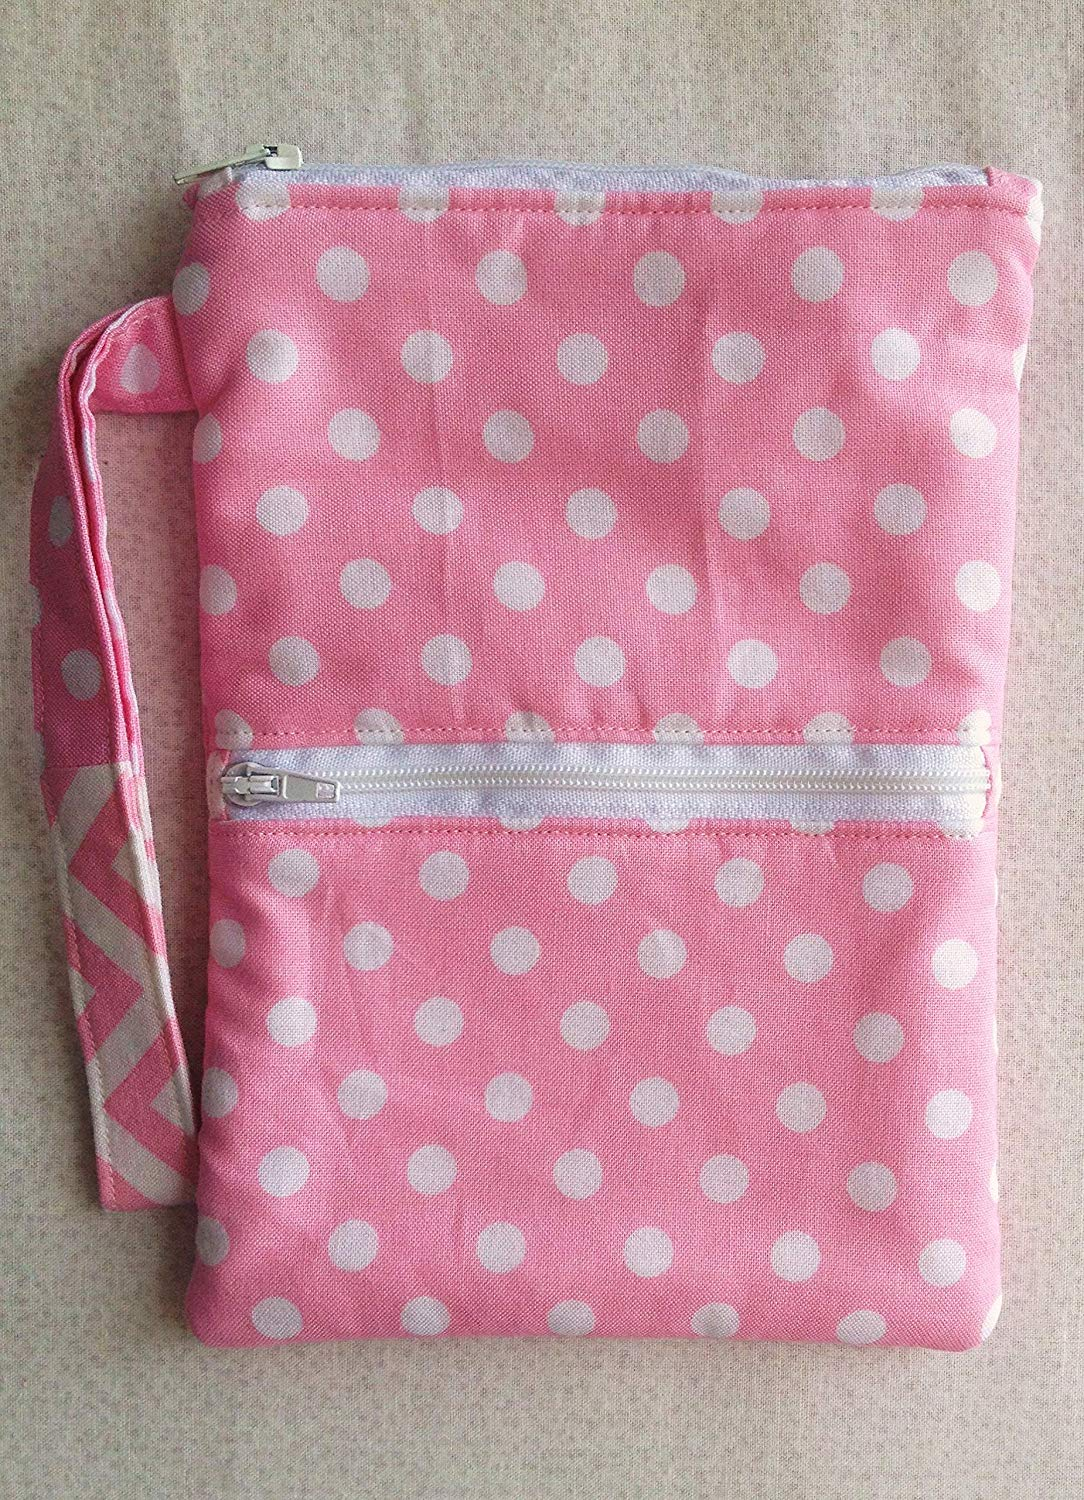 472eb194e Get Quotations · Pink Polka Dot Wristlet, Clutch, Cell Phone Case, Zipper  Pouch, Phone Bag